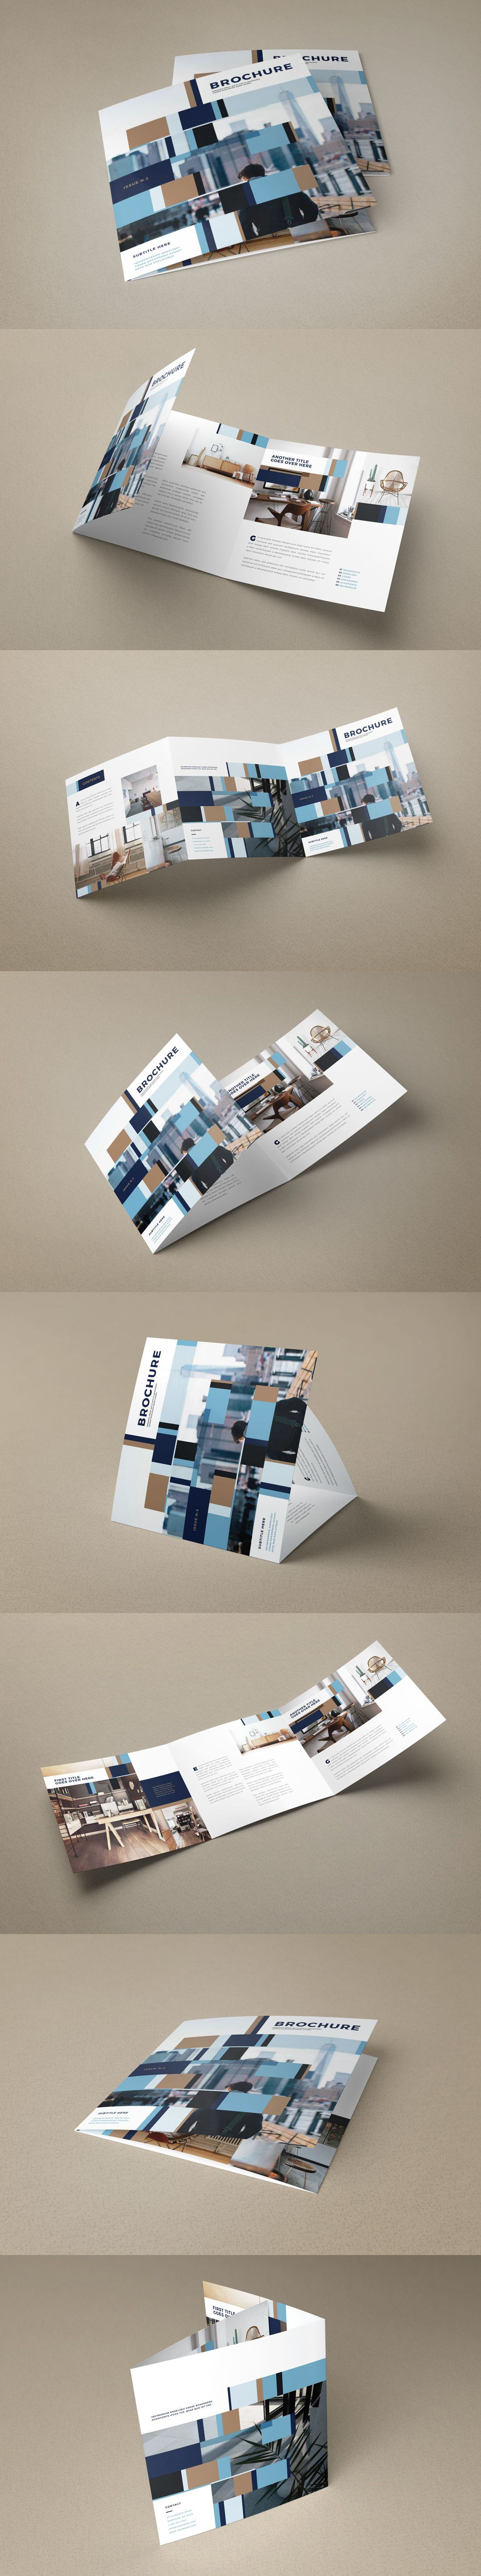 Square Modern Interior Design Trifold Brochure Template InDesign ...